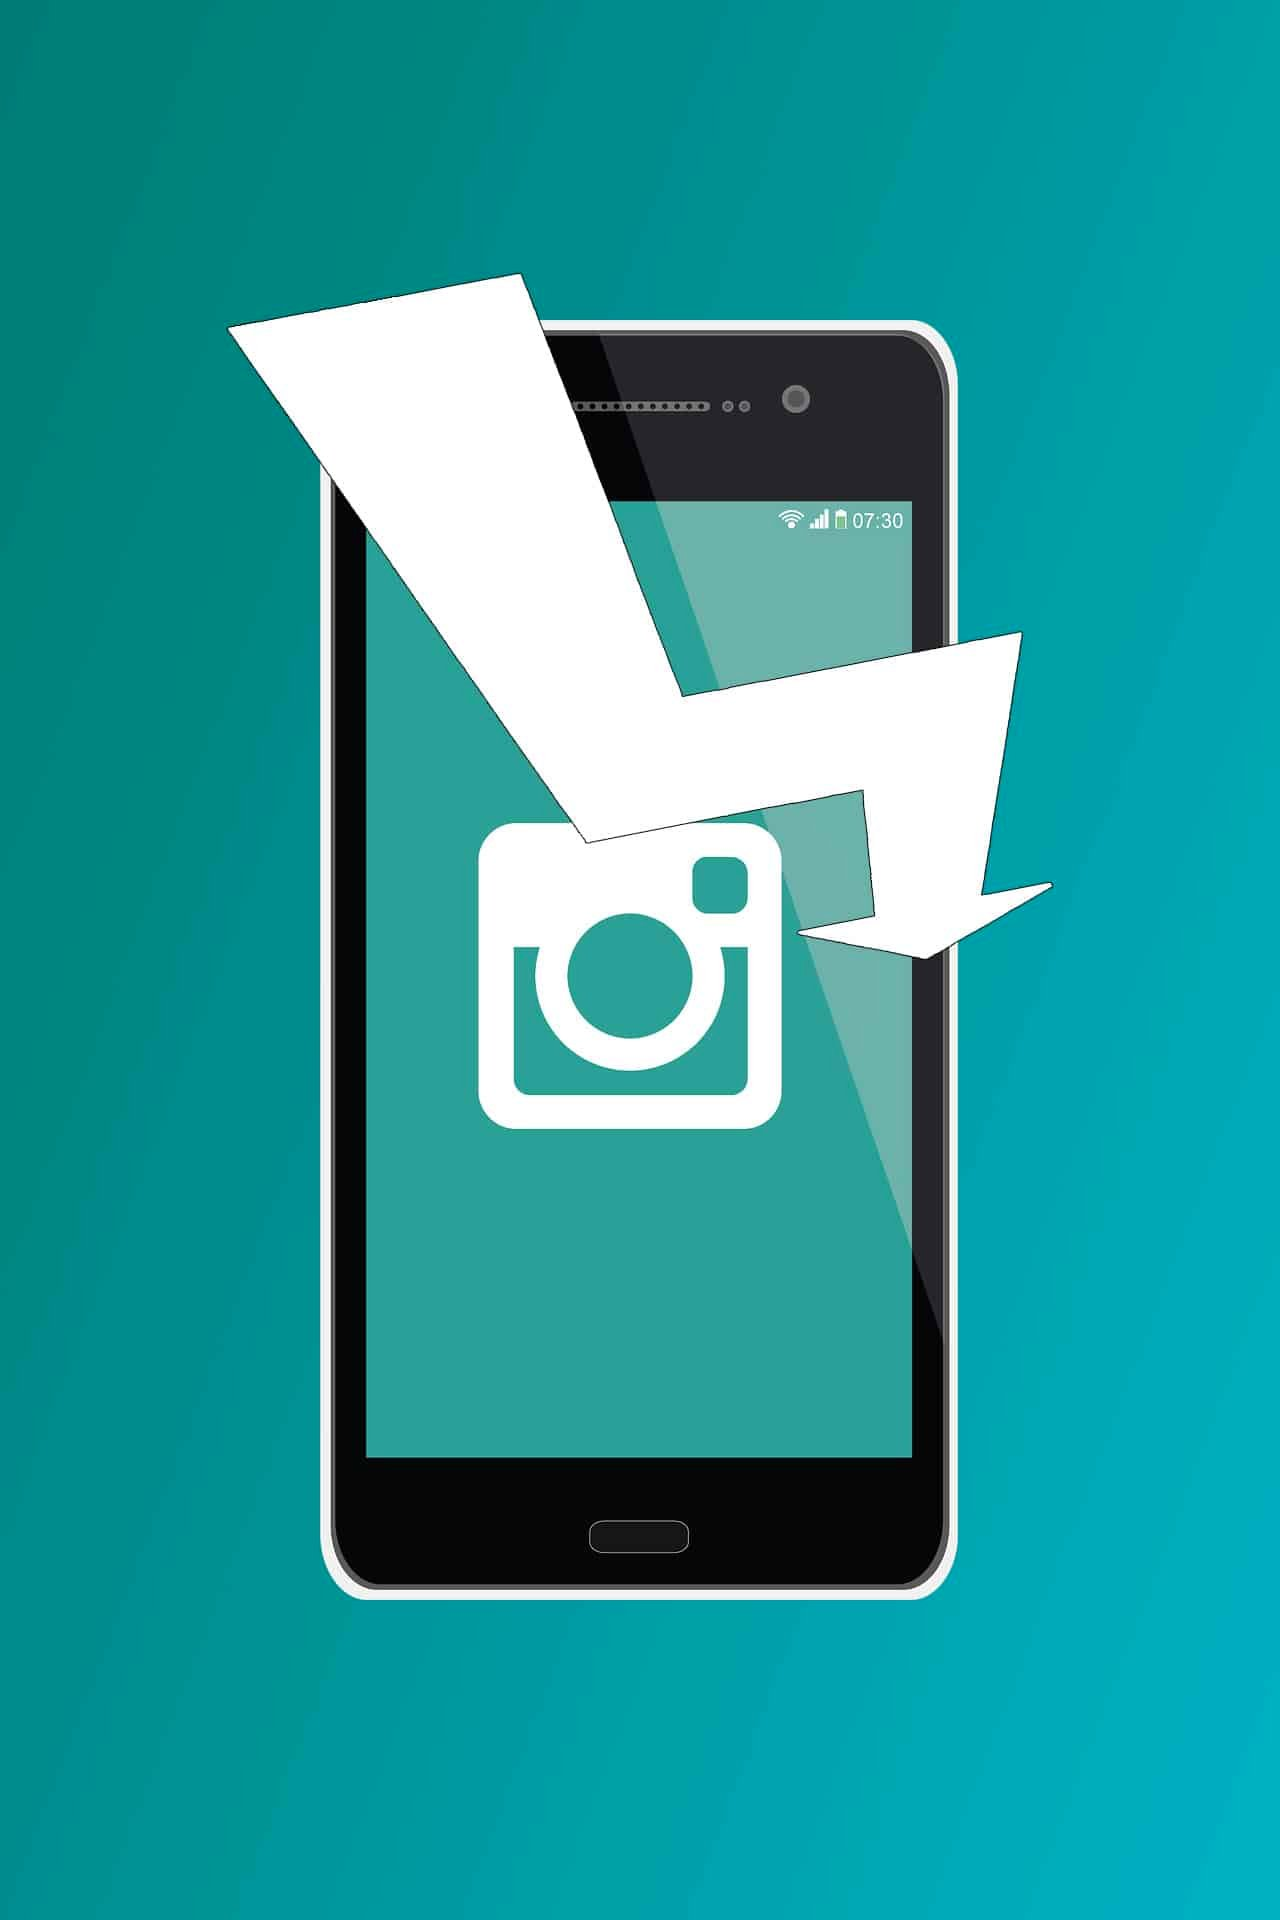 Instagram engagement influencer in calo